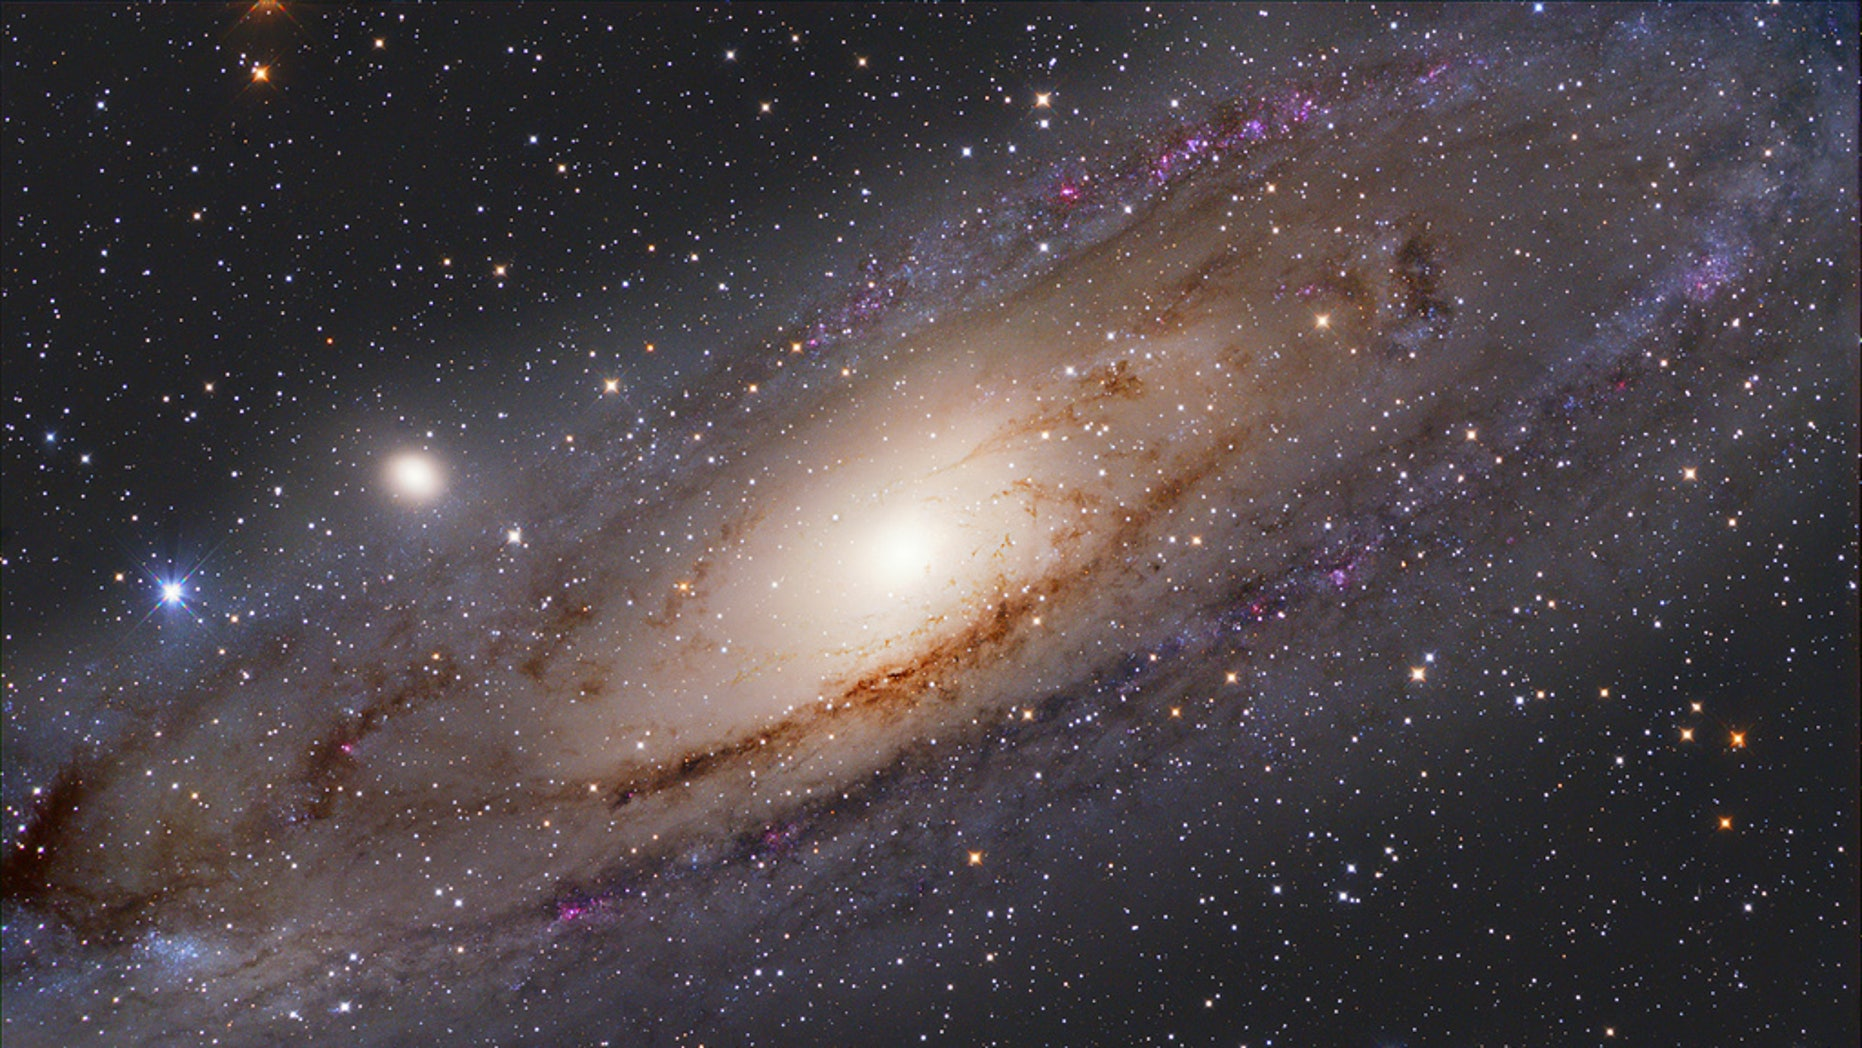 Alien laser beams student project scans sky for intelligent life fox news - Galaxy and planets ...